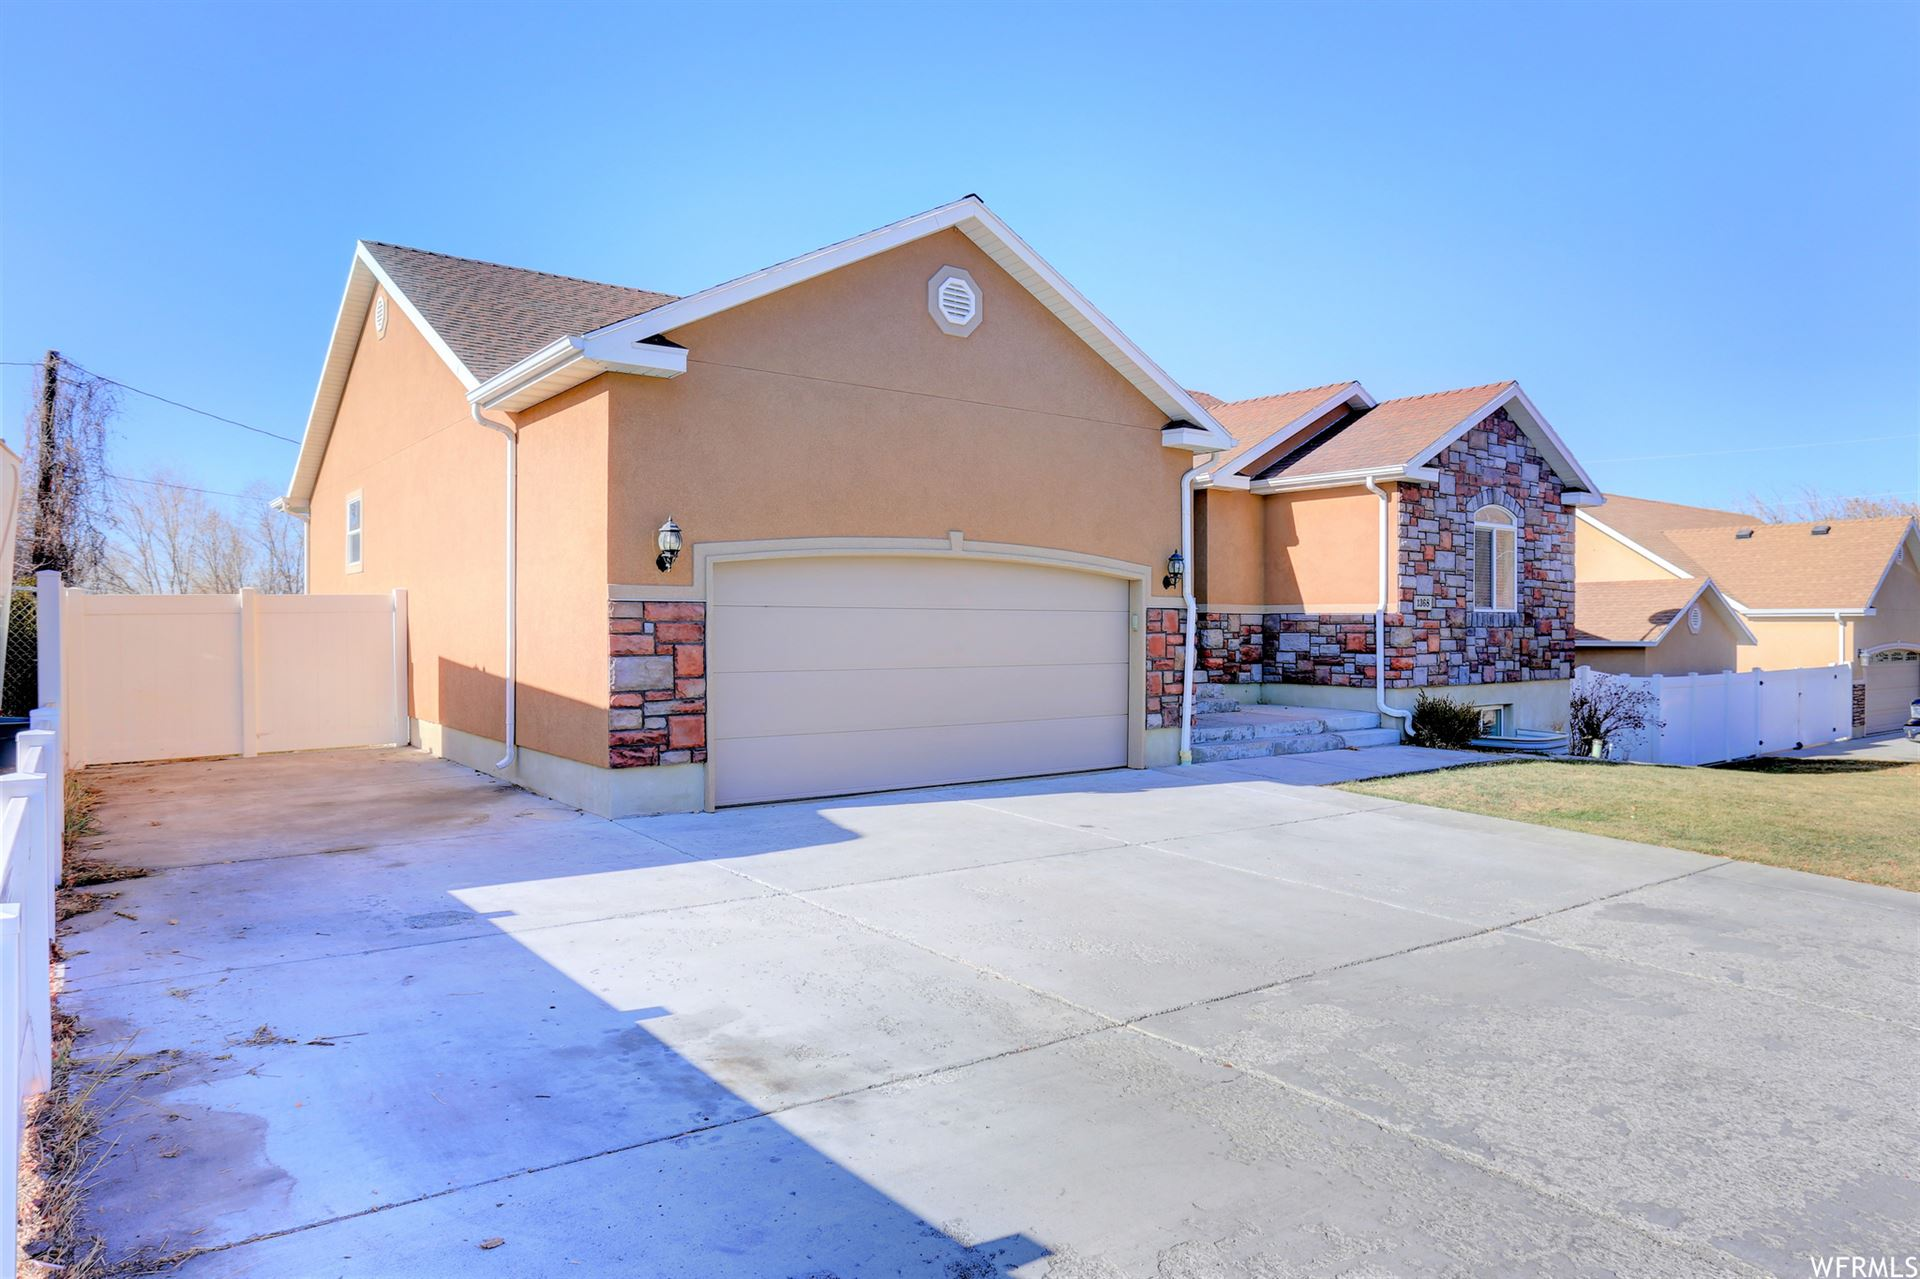 Photo of 1368 S 625 E, Springville, UT 84663 (MLS # 1714952)